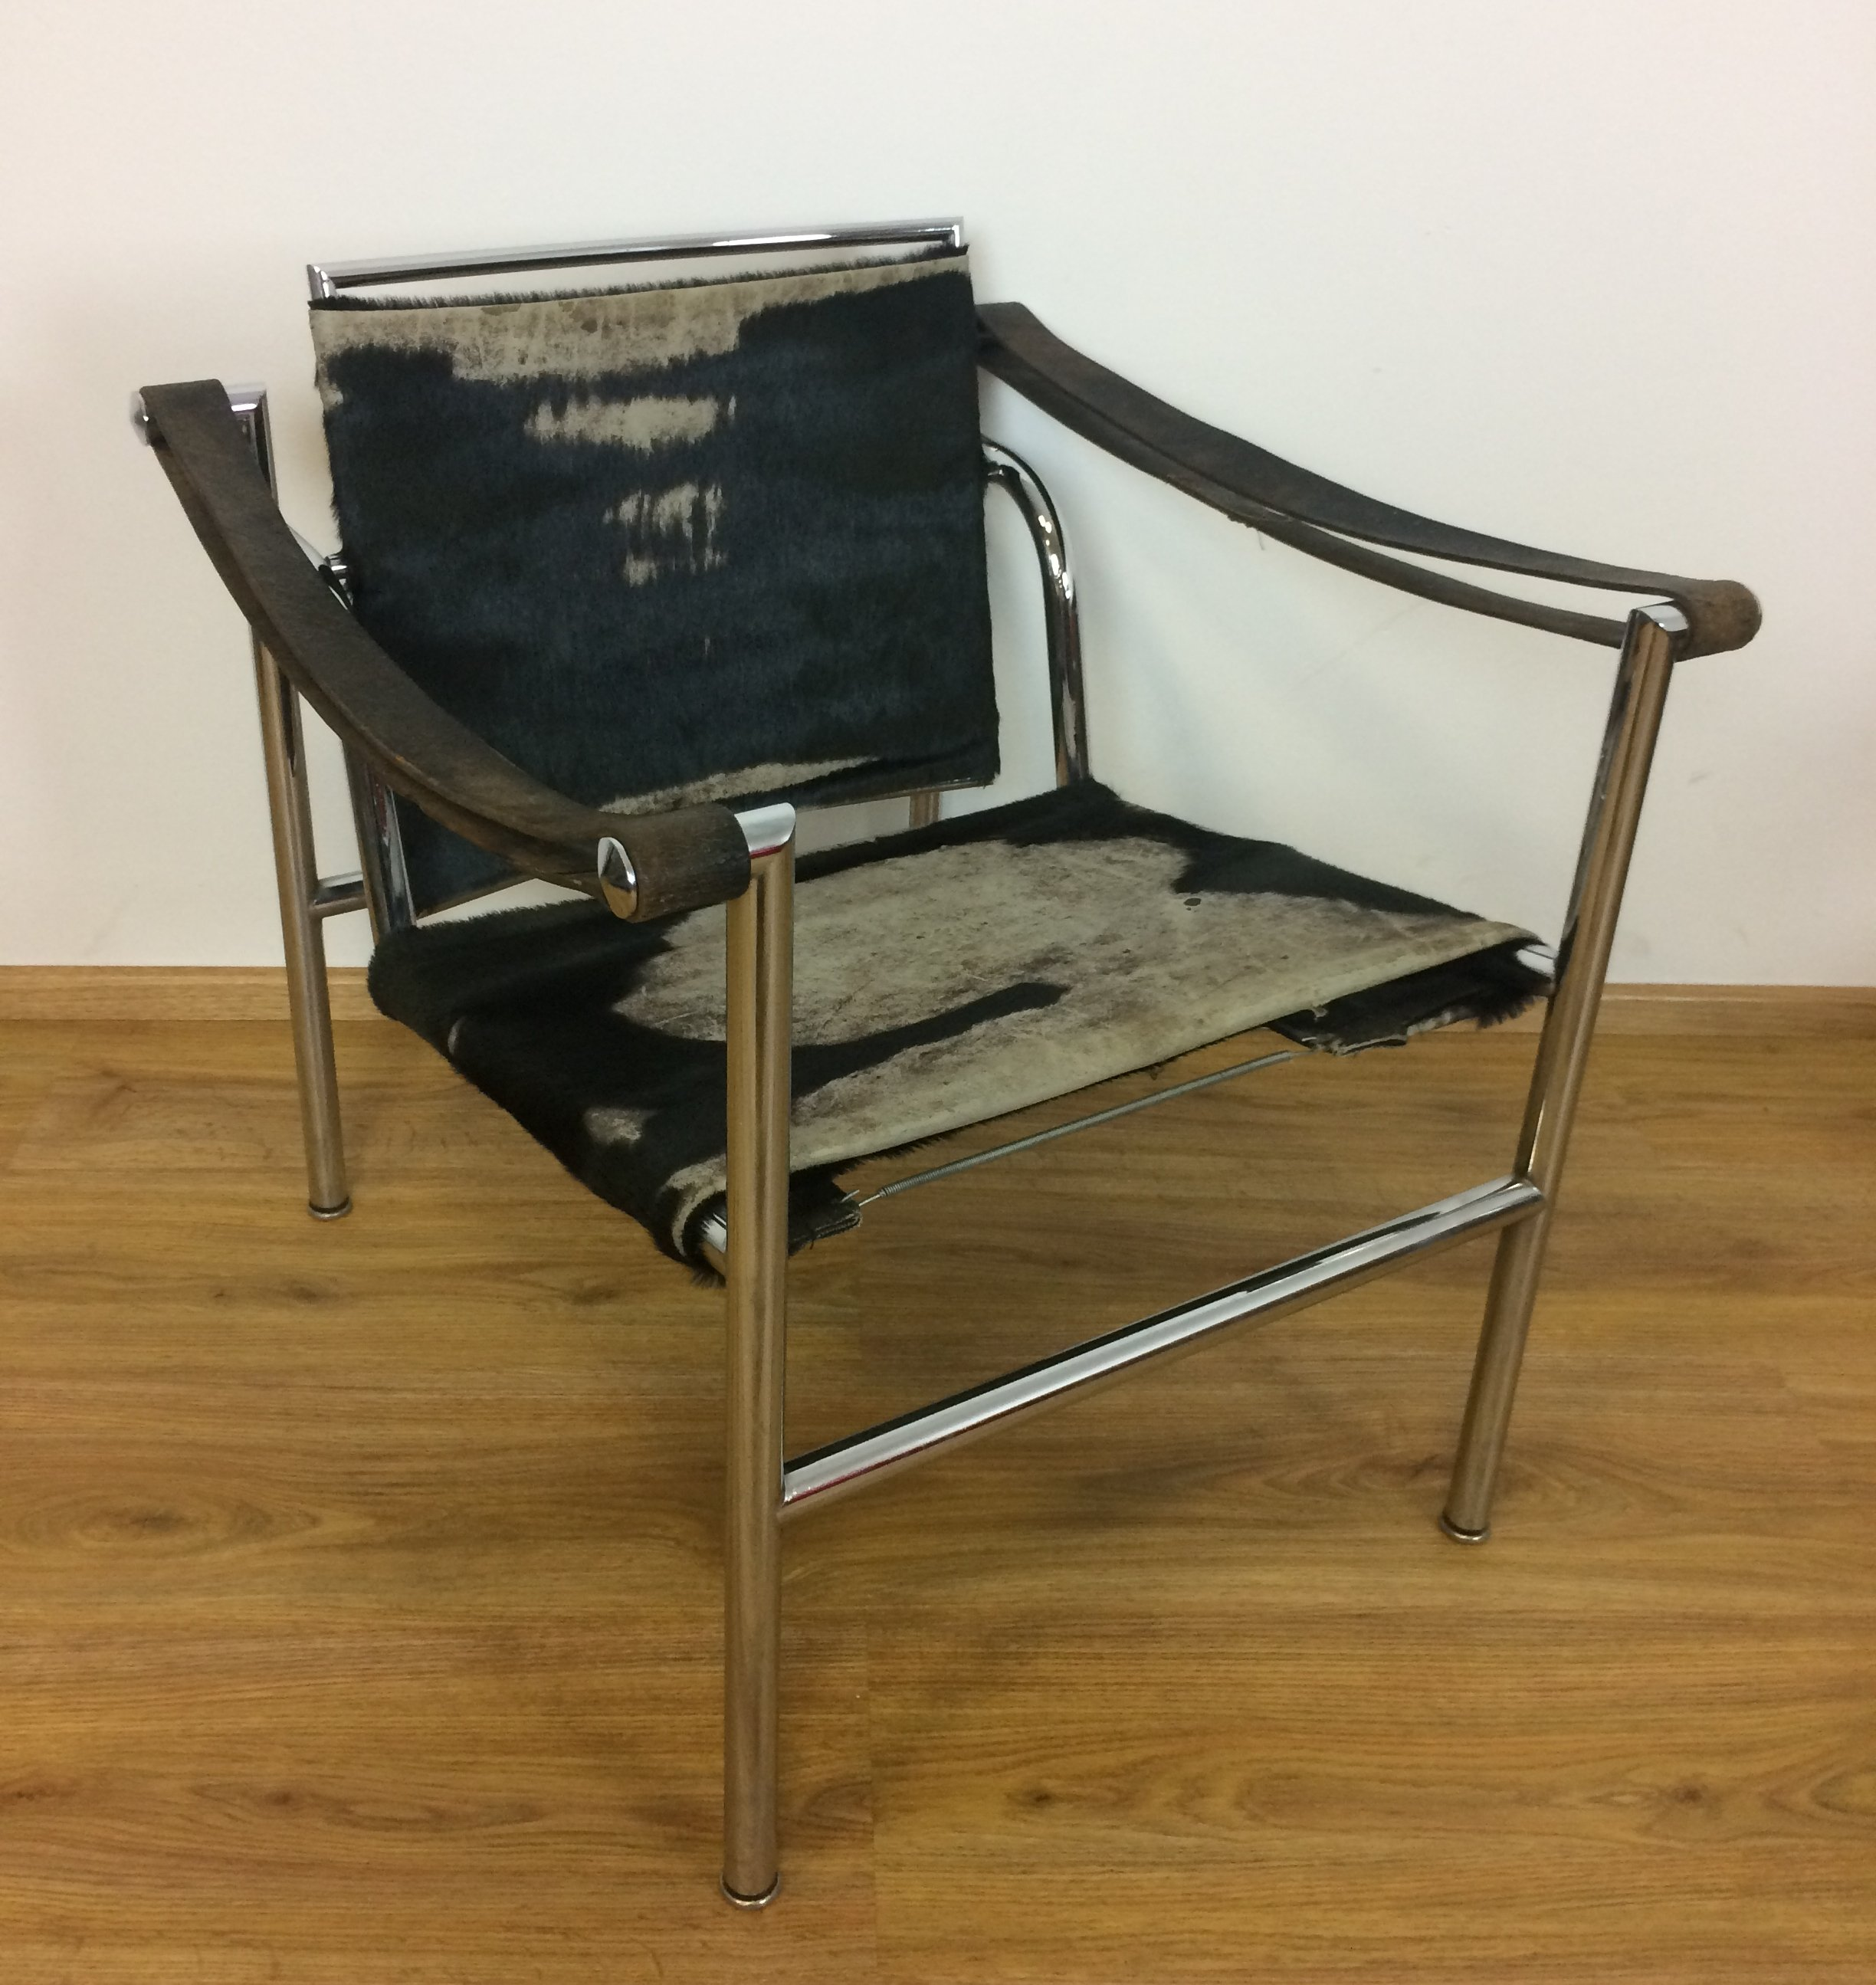 Sedia Cassina Vintage Le Corbusier Lc1 Awesome Lc Chair By Le Corbusier Pierre